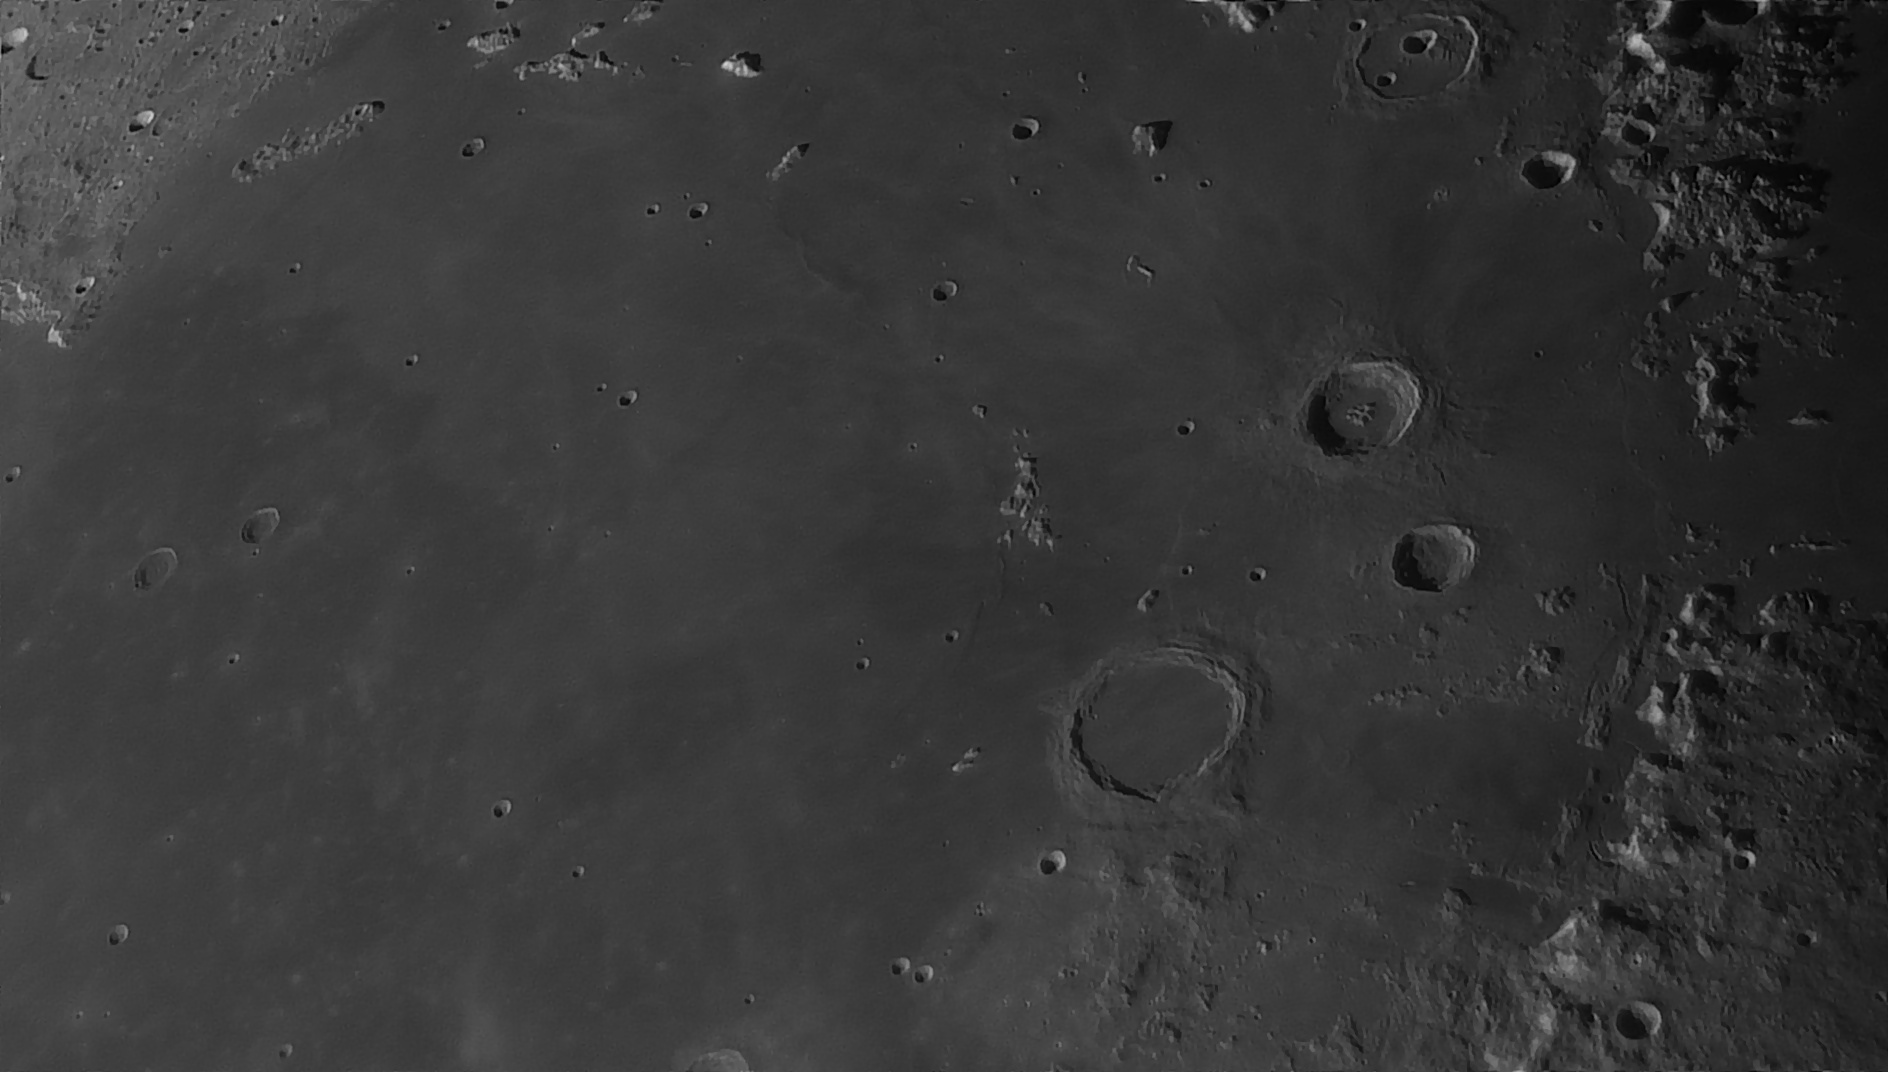 5e5195140bbcf_Moon_055047_160120_ZWOASI290MM_Rouge_23A_AS_P35_lapl6_ap1067_AI_Deconvolution_7--.jpg.13c202307d5bd90476cc1f86432402be.jpg